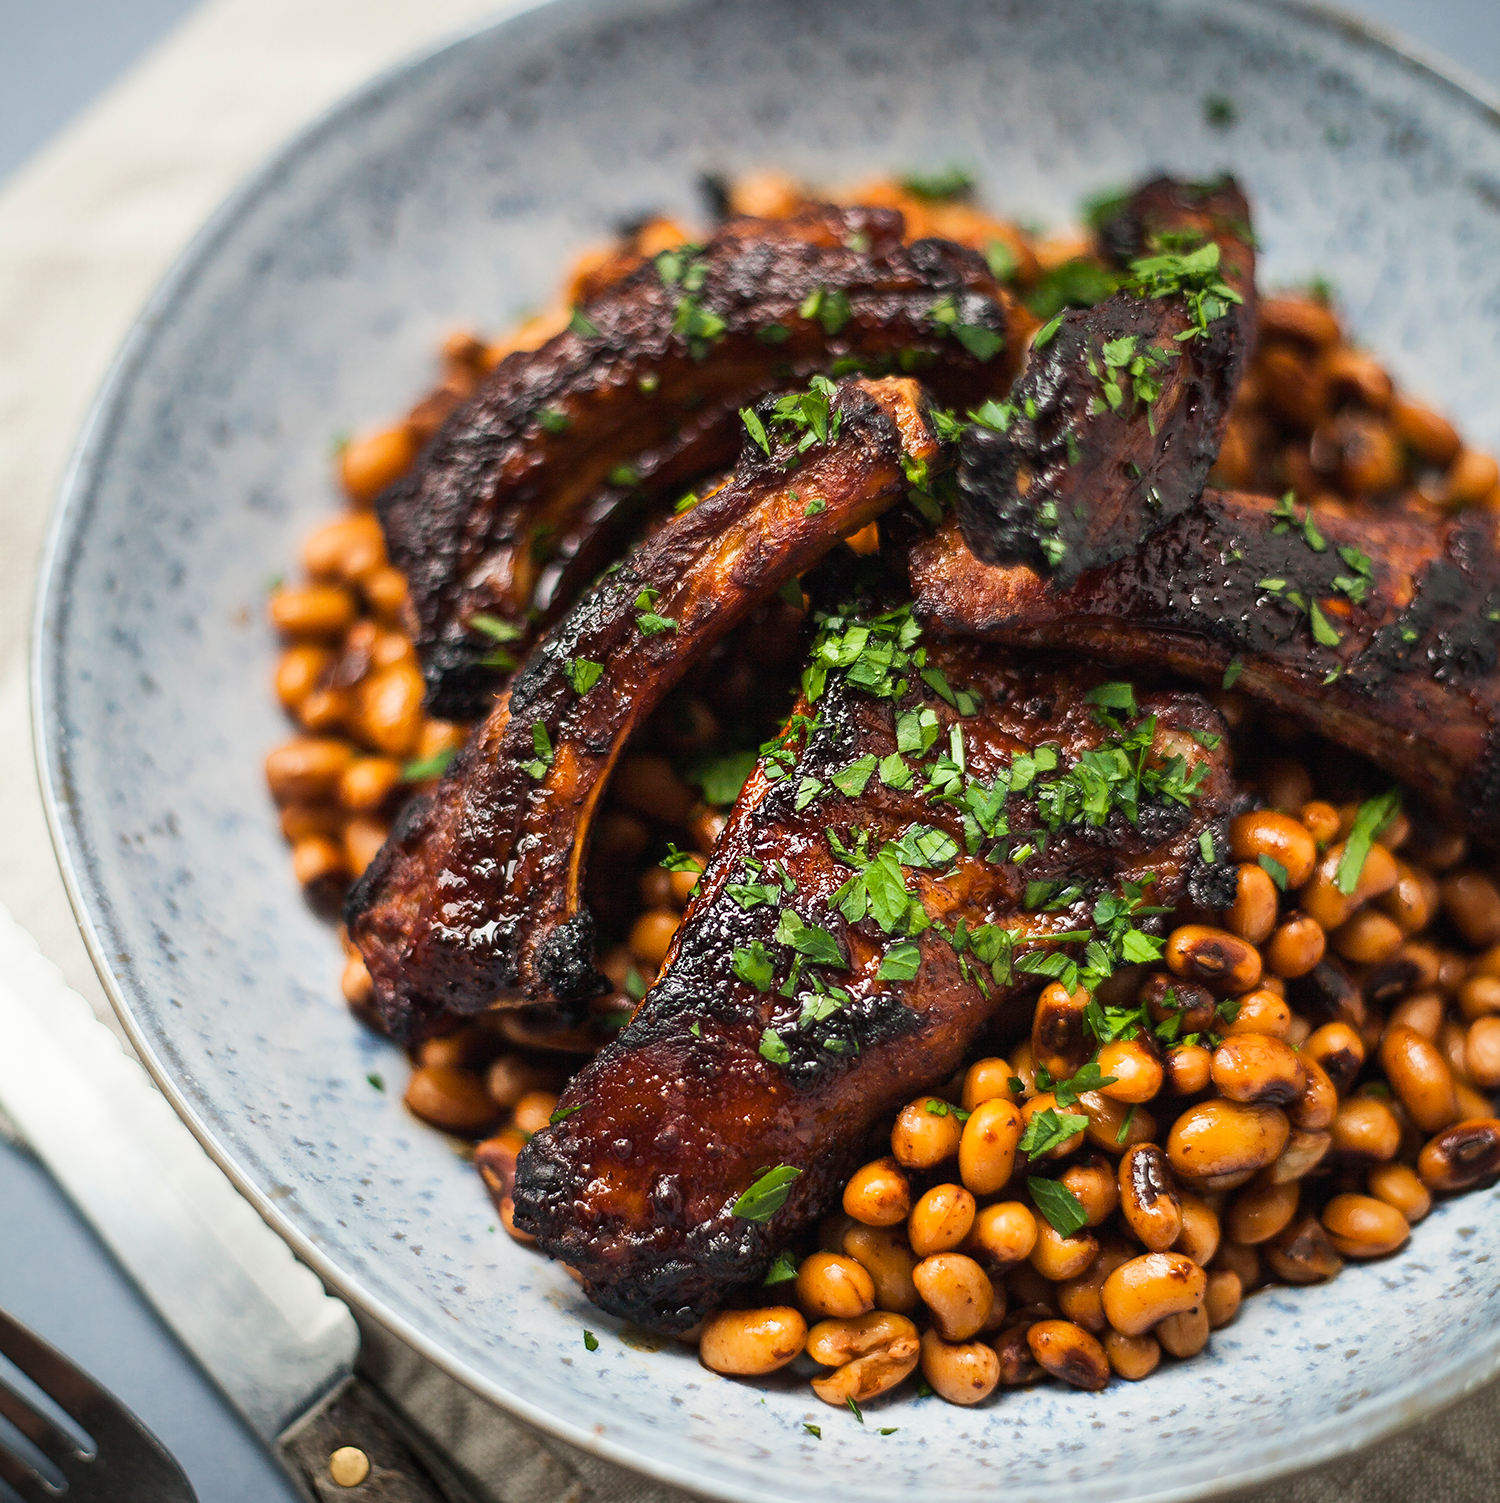 BBQ spare ribs and beans